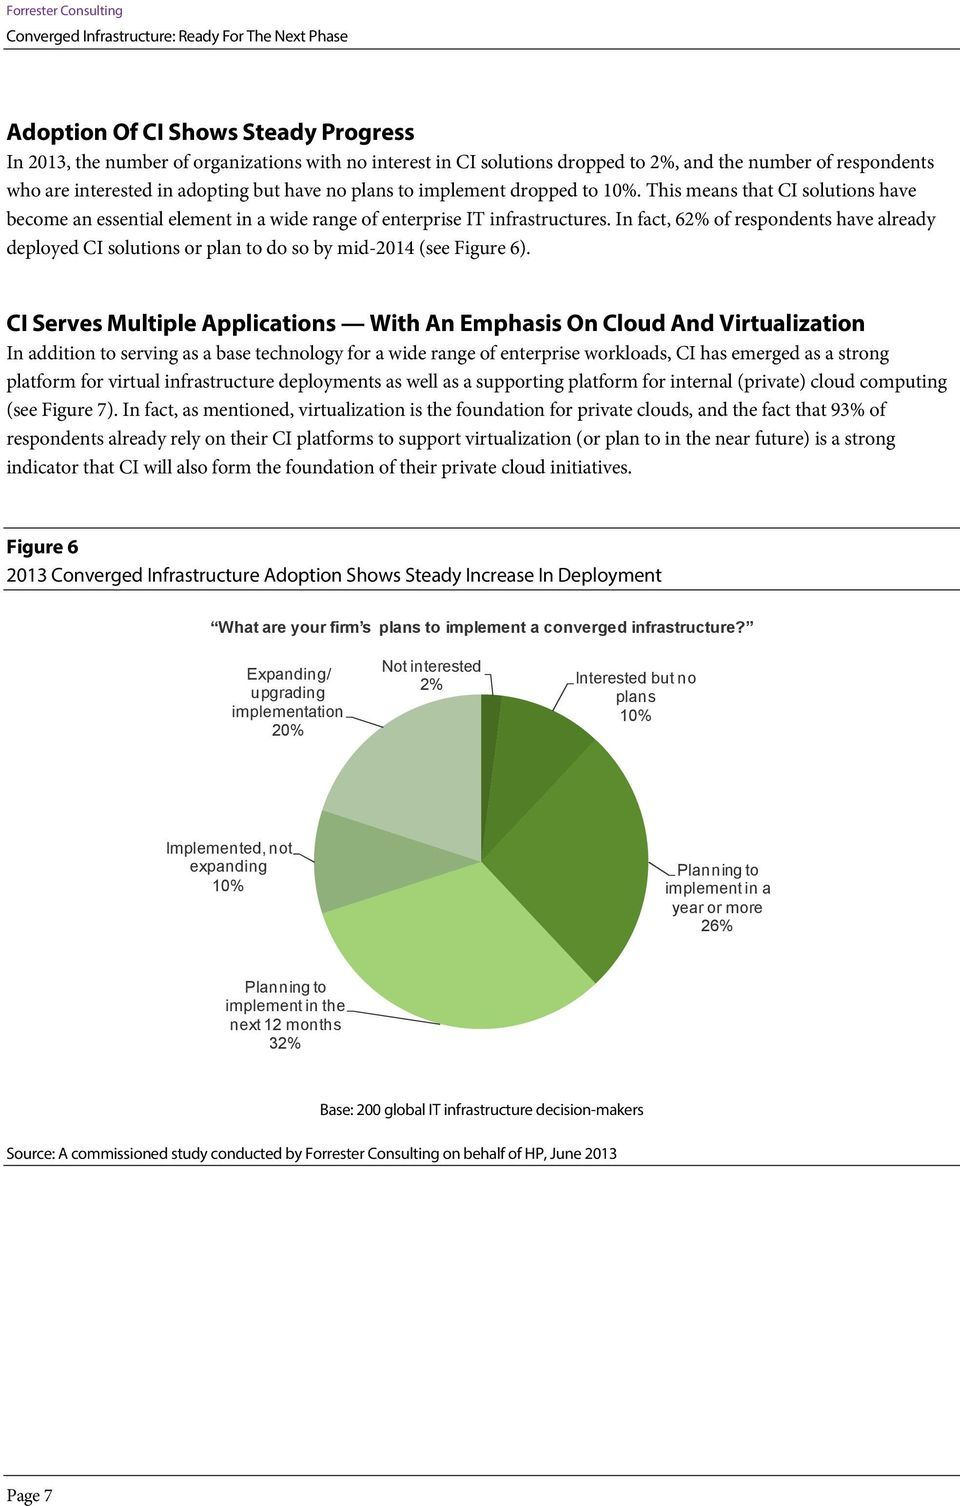 In fact, 62% of respondents have already deployed CI solutions or plan to do so by mid-2014 (see Figure 6).